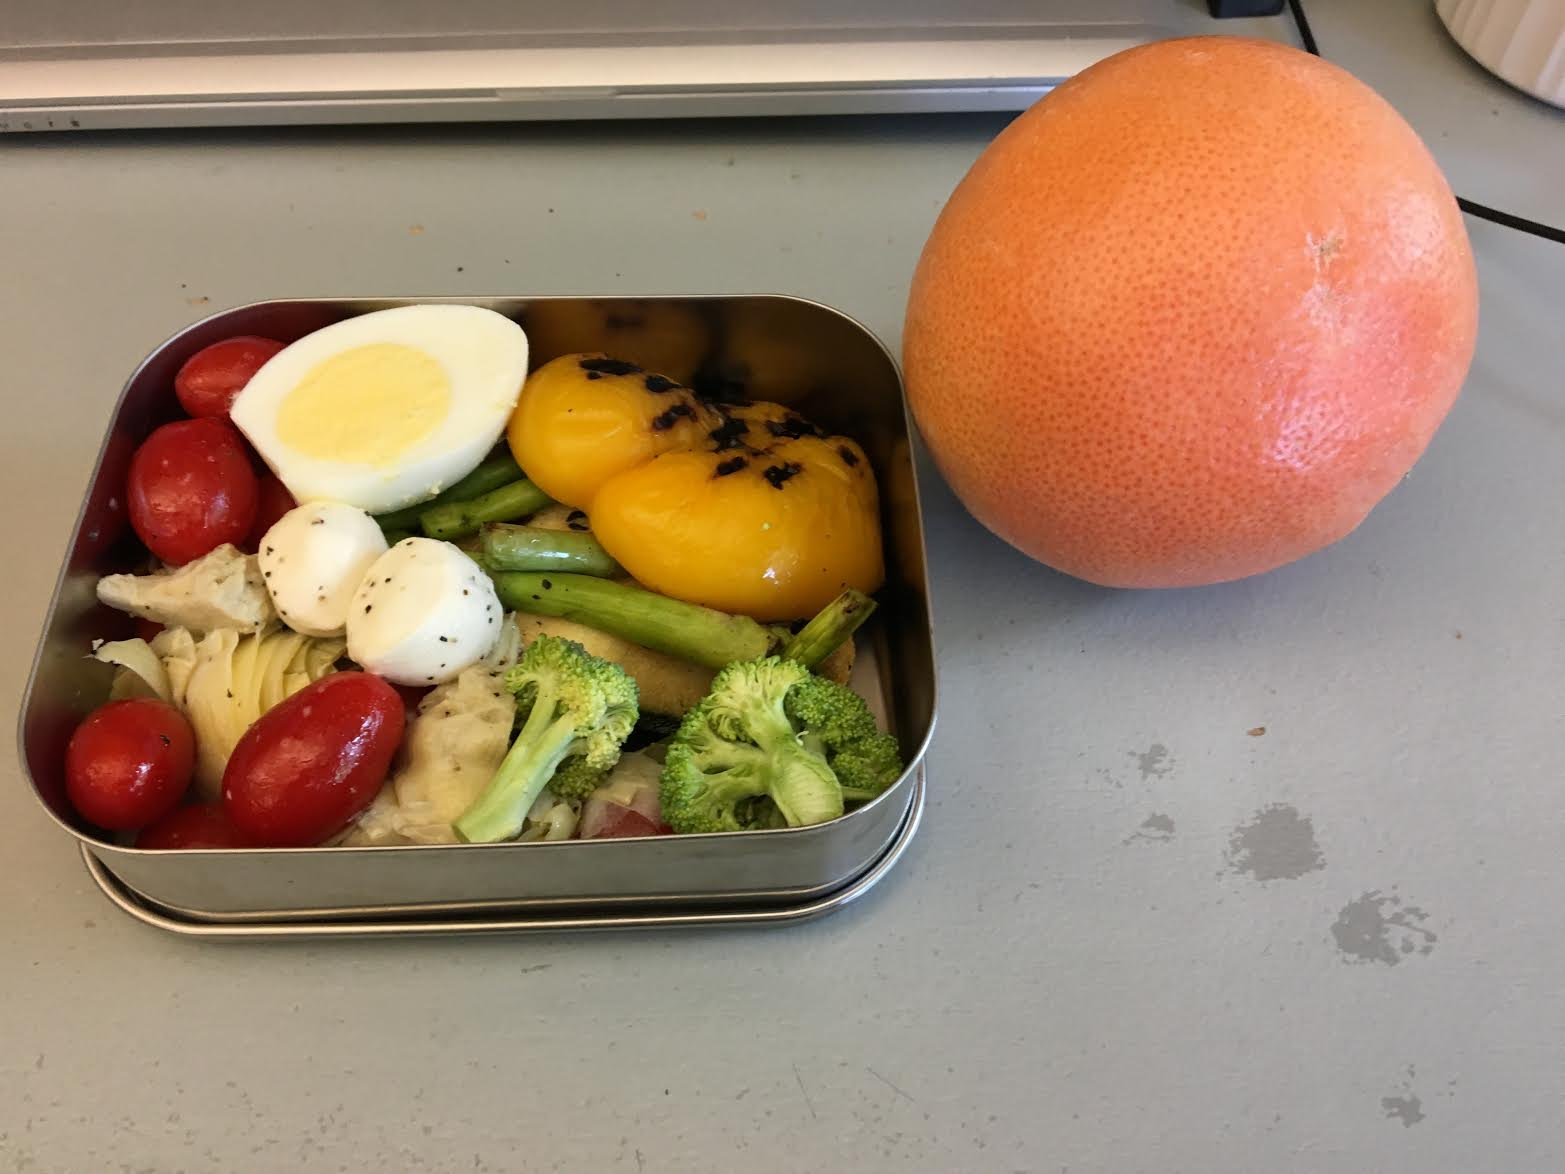 Lynn uses stainless steel containers for meals while traveling.